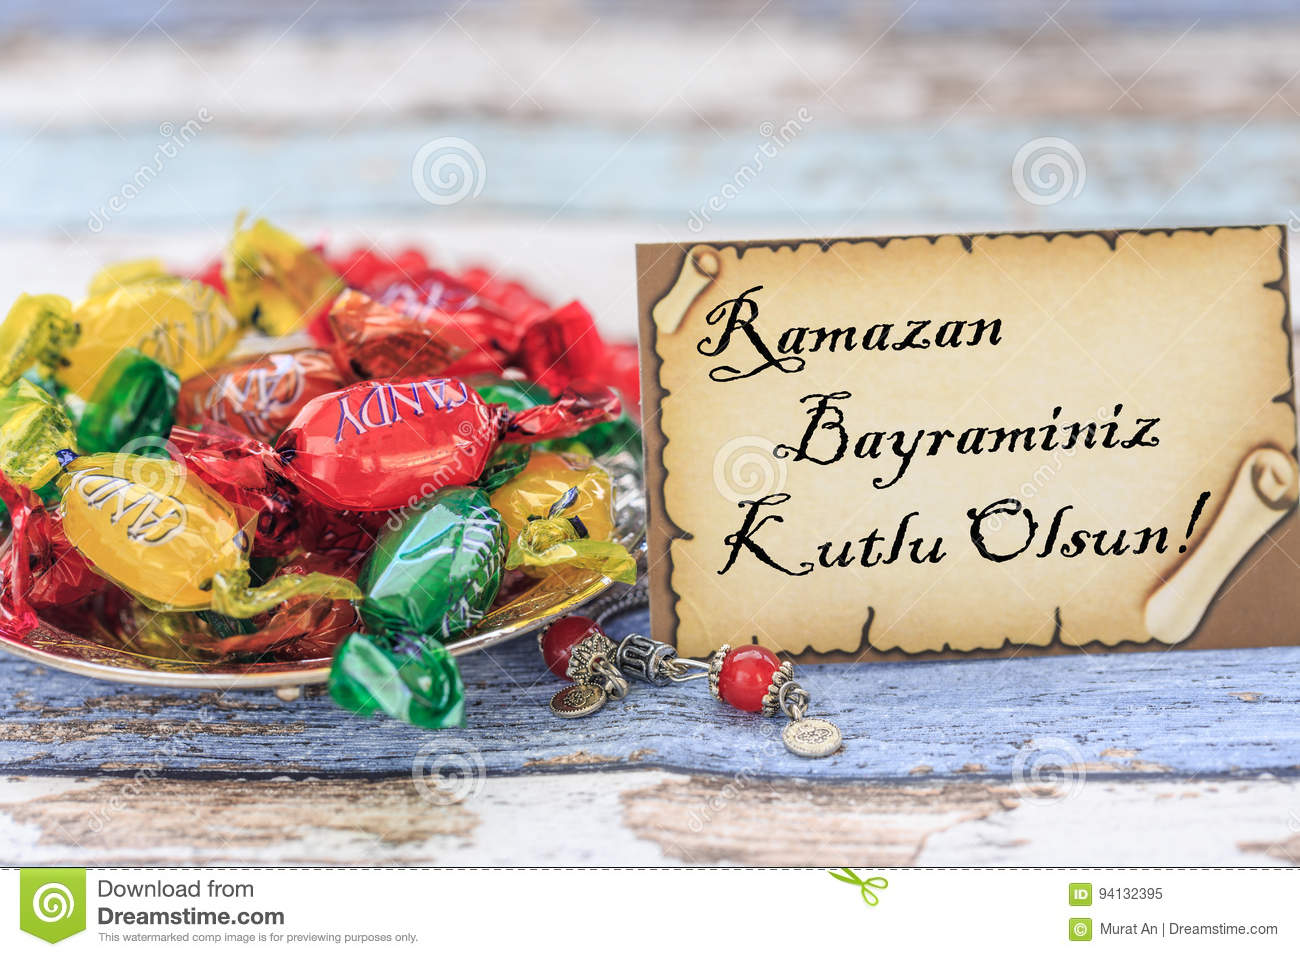 Happy Eid Al Fitr In Turkish On The Card With Candies On Vintage